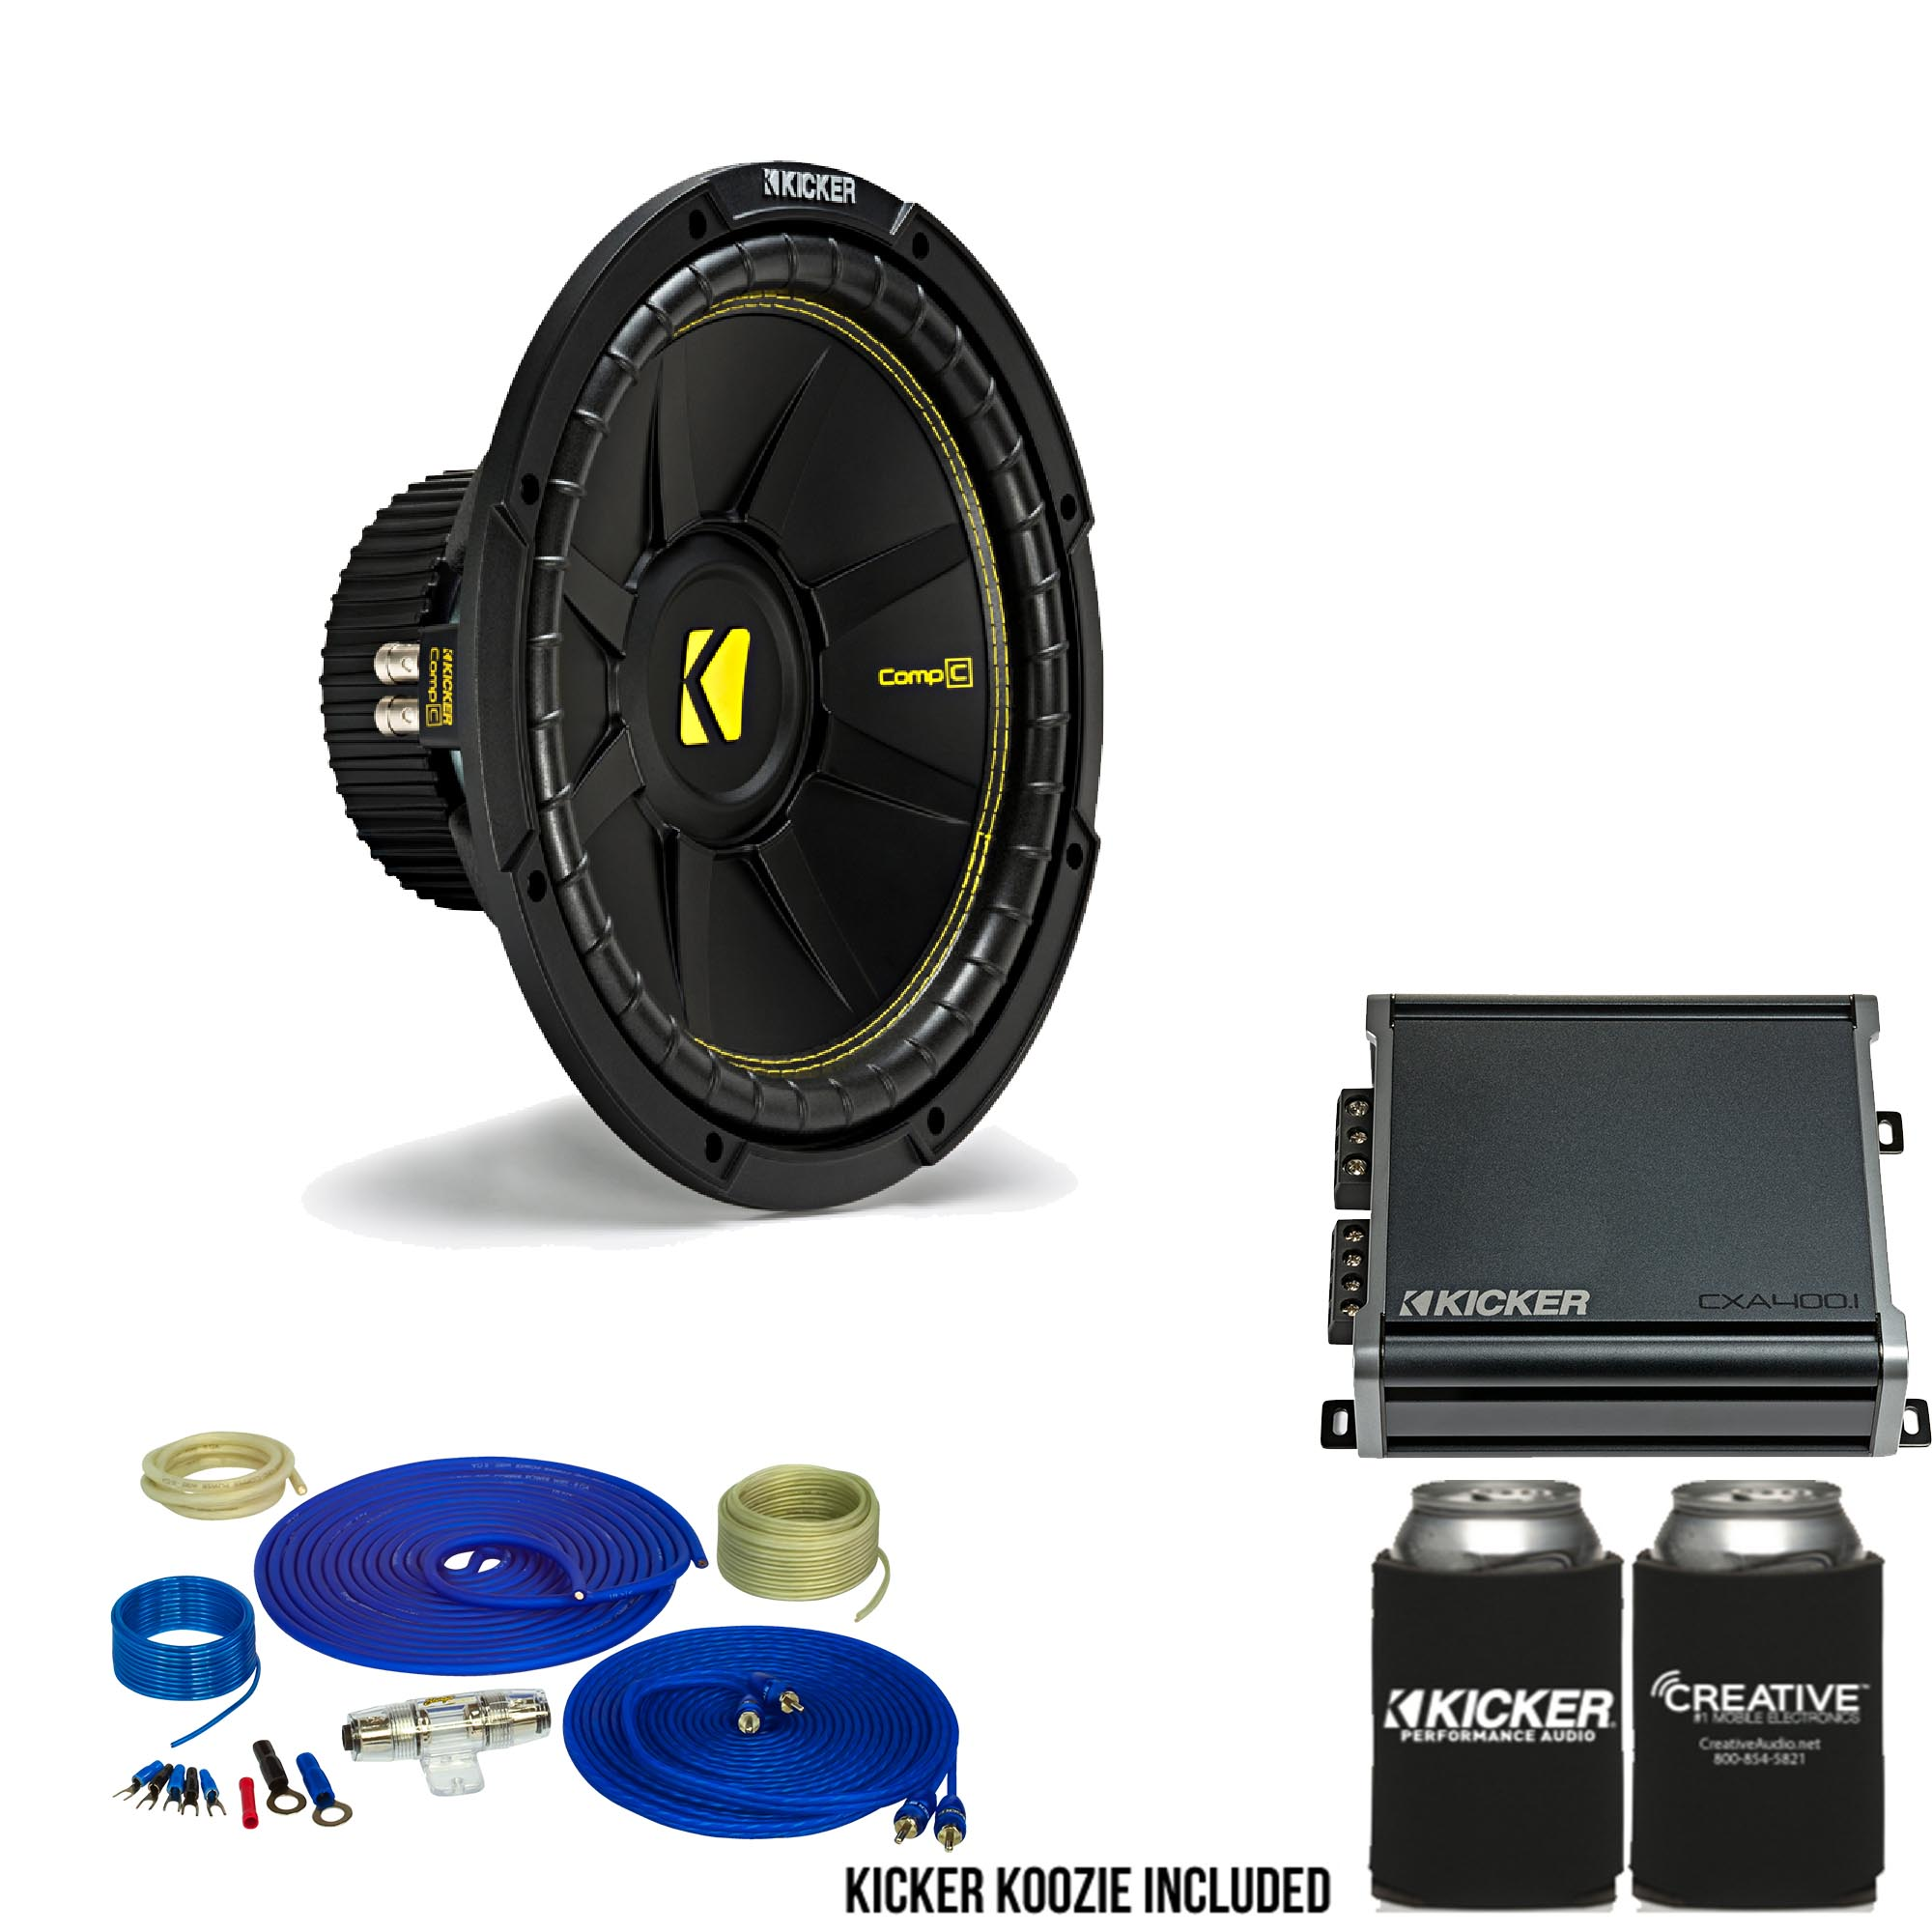 Details about Kicker 12 Inch B Bundle - A 44CWCD124 Subwoofer with on rockford fosgate wiring kit, jl audio wiring kit, kicker amp with 8, 0 gauge amp kit,